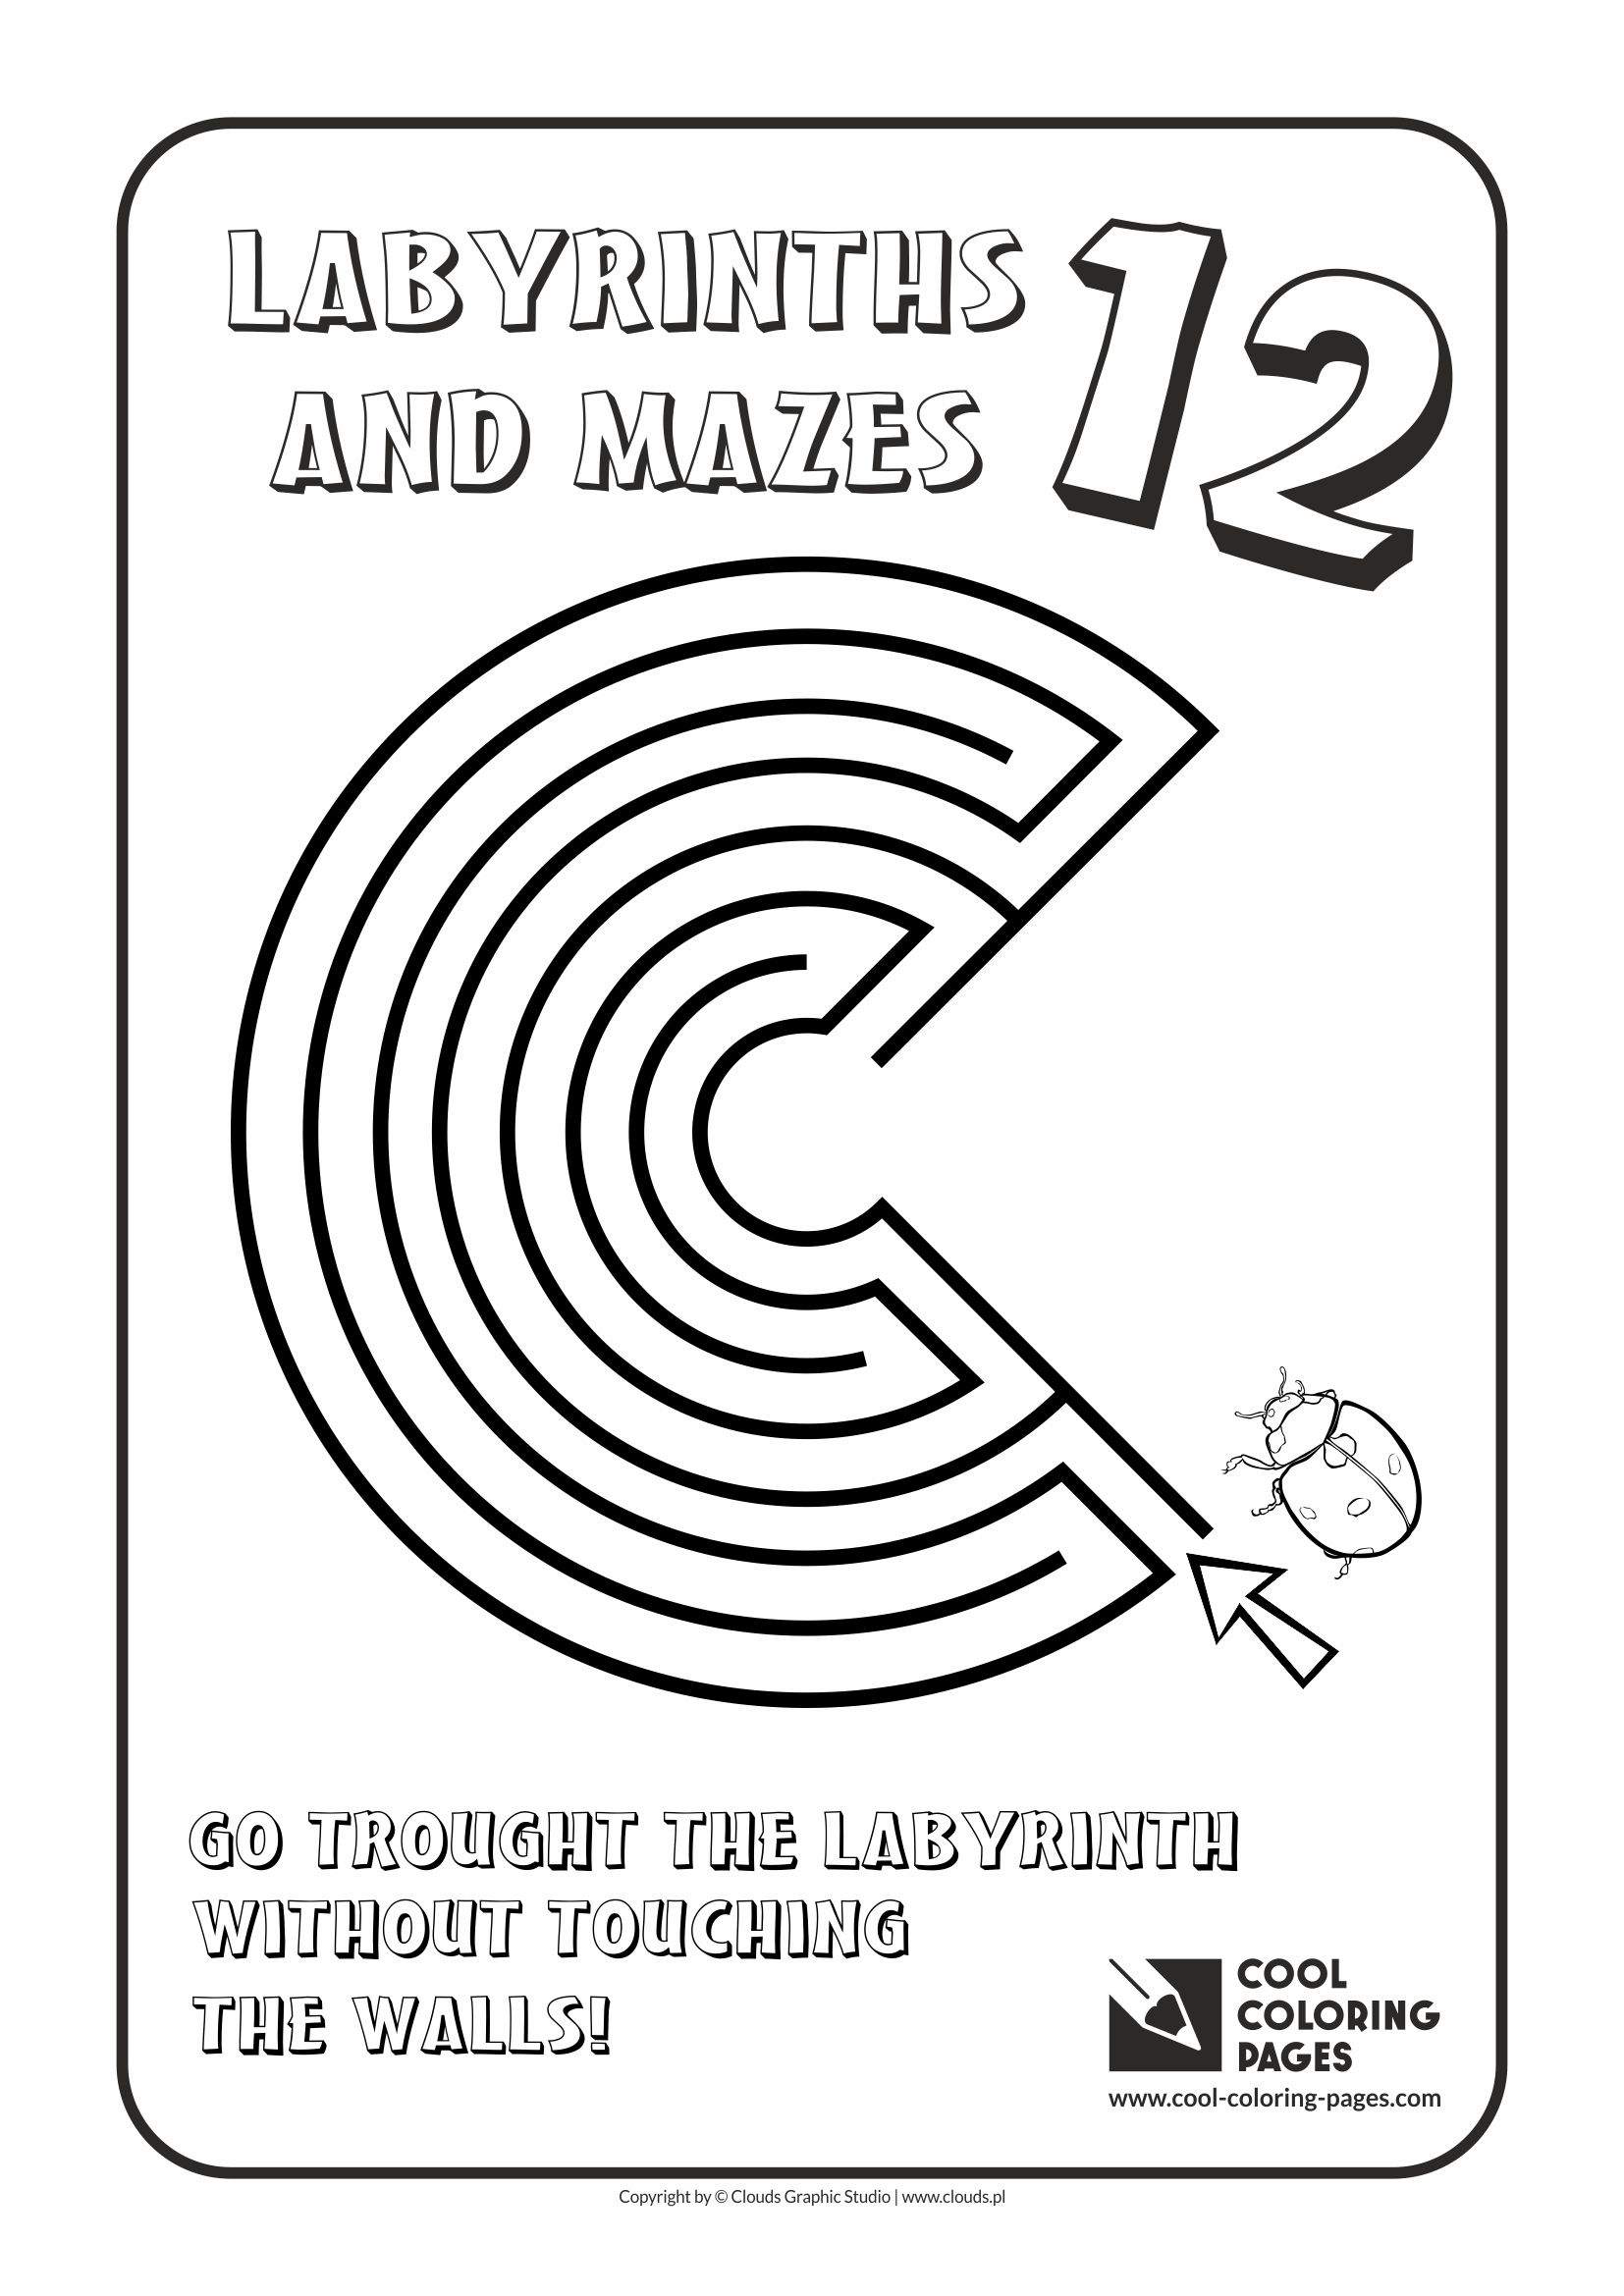 Cool Coloring Pages Labyrinths